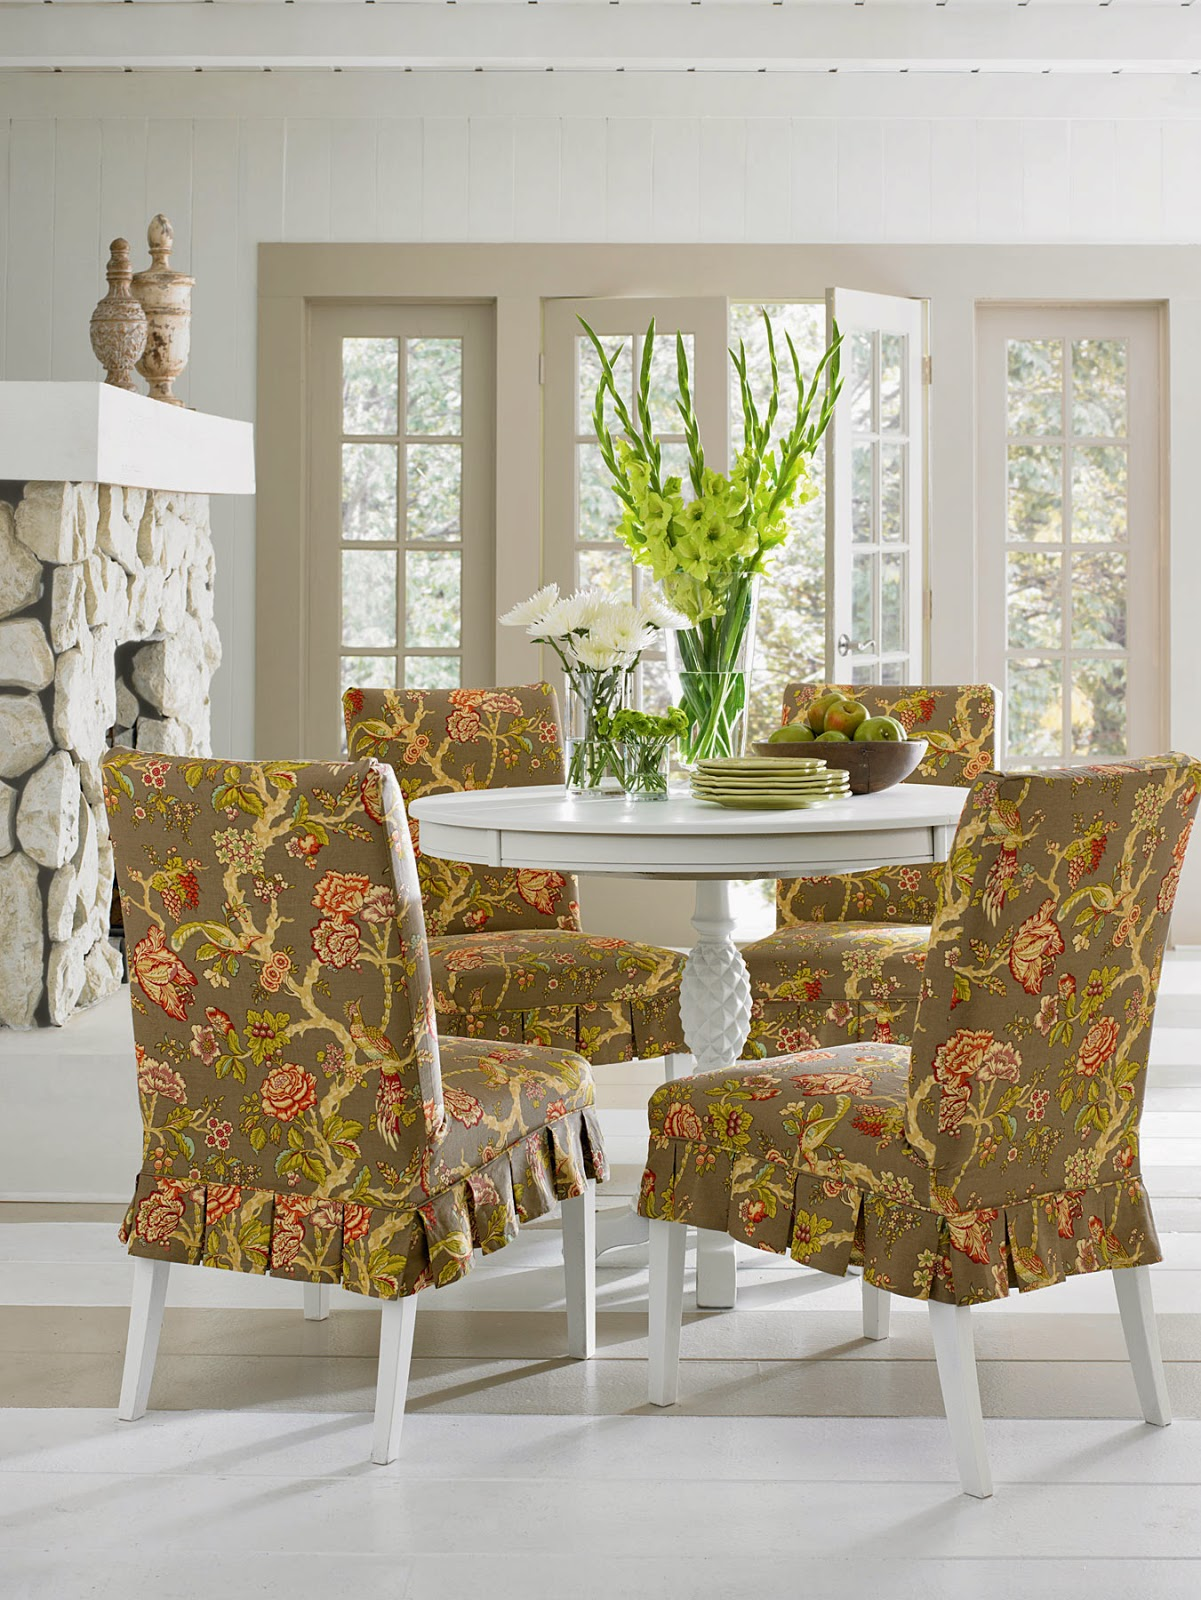 Dining Chair Slipcover Sure Fit Slipcovers Super Easy Way To Pretty Up Those